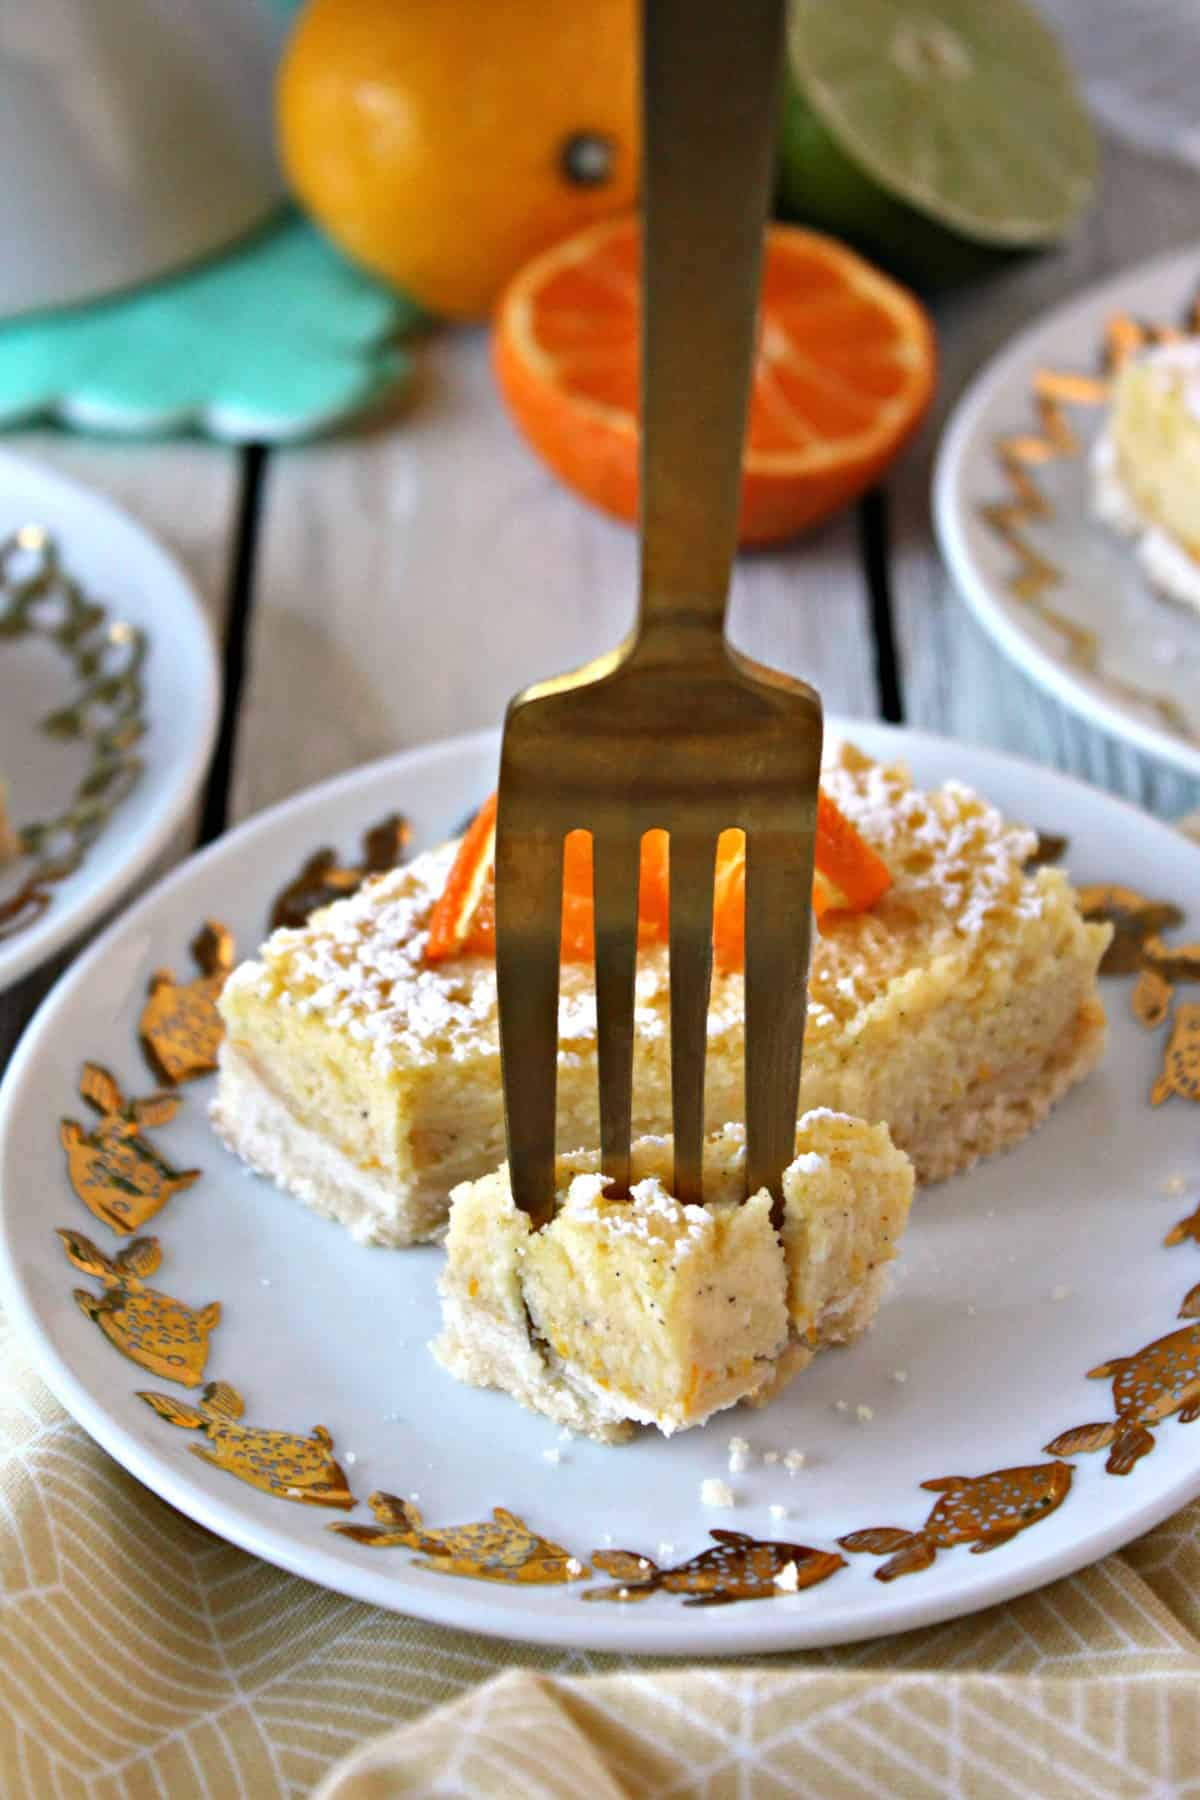 Vanilla Bean Citrus Bars! A crisp, shortbread crust is topped with a layer of sweet, citrusy filling speckled with fragrant vanilla beans. These are the stuff of potluck dreams!